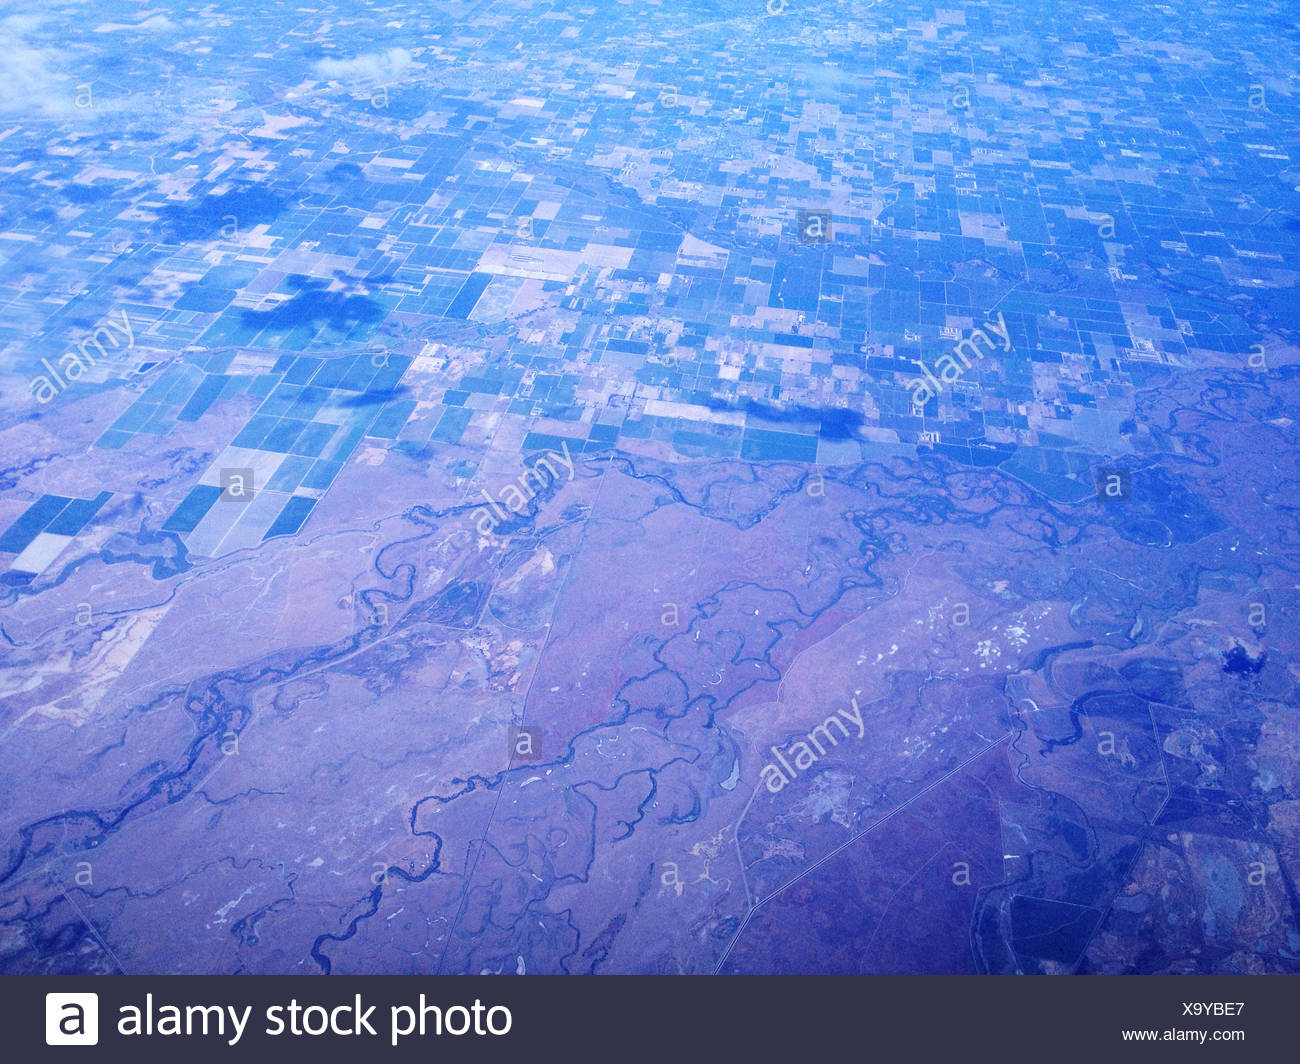 Nevada, United States of America Agriculture, Rivers And Desert From Above - Stock Image